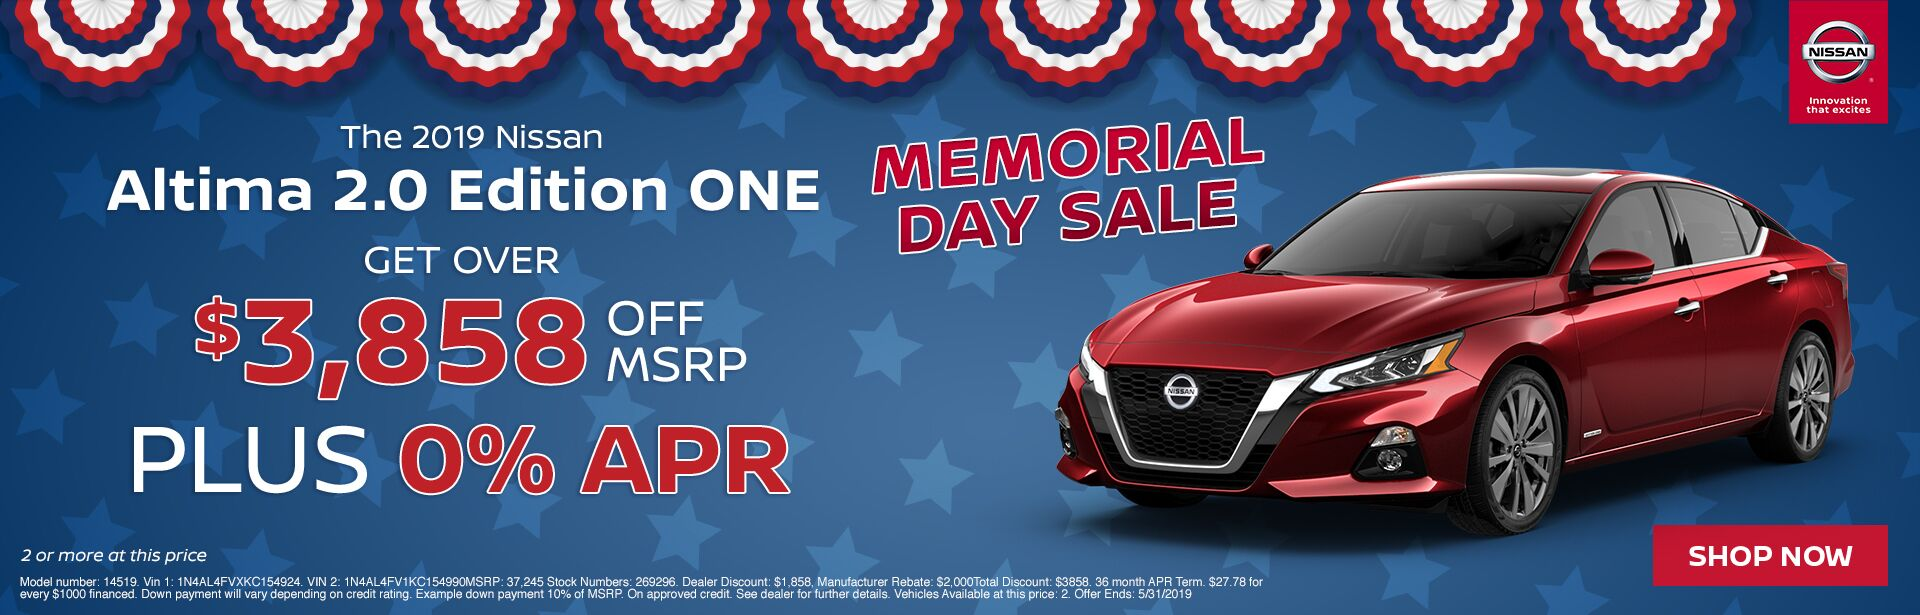 Altima Offer- Memorial Day